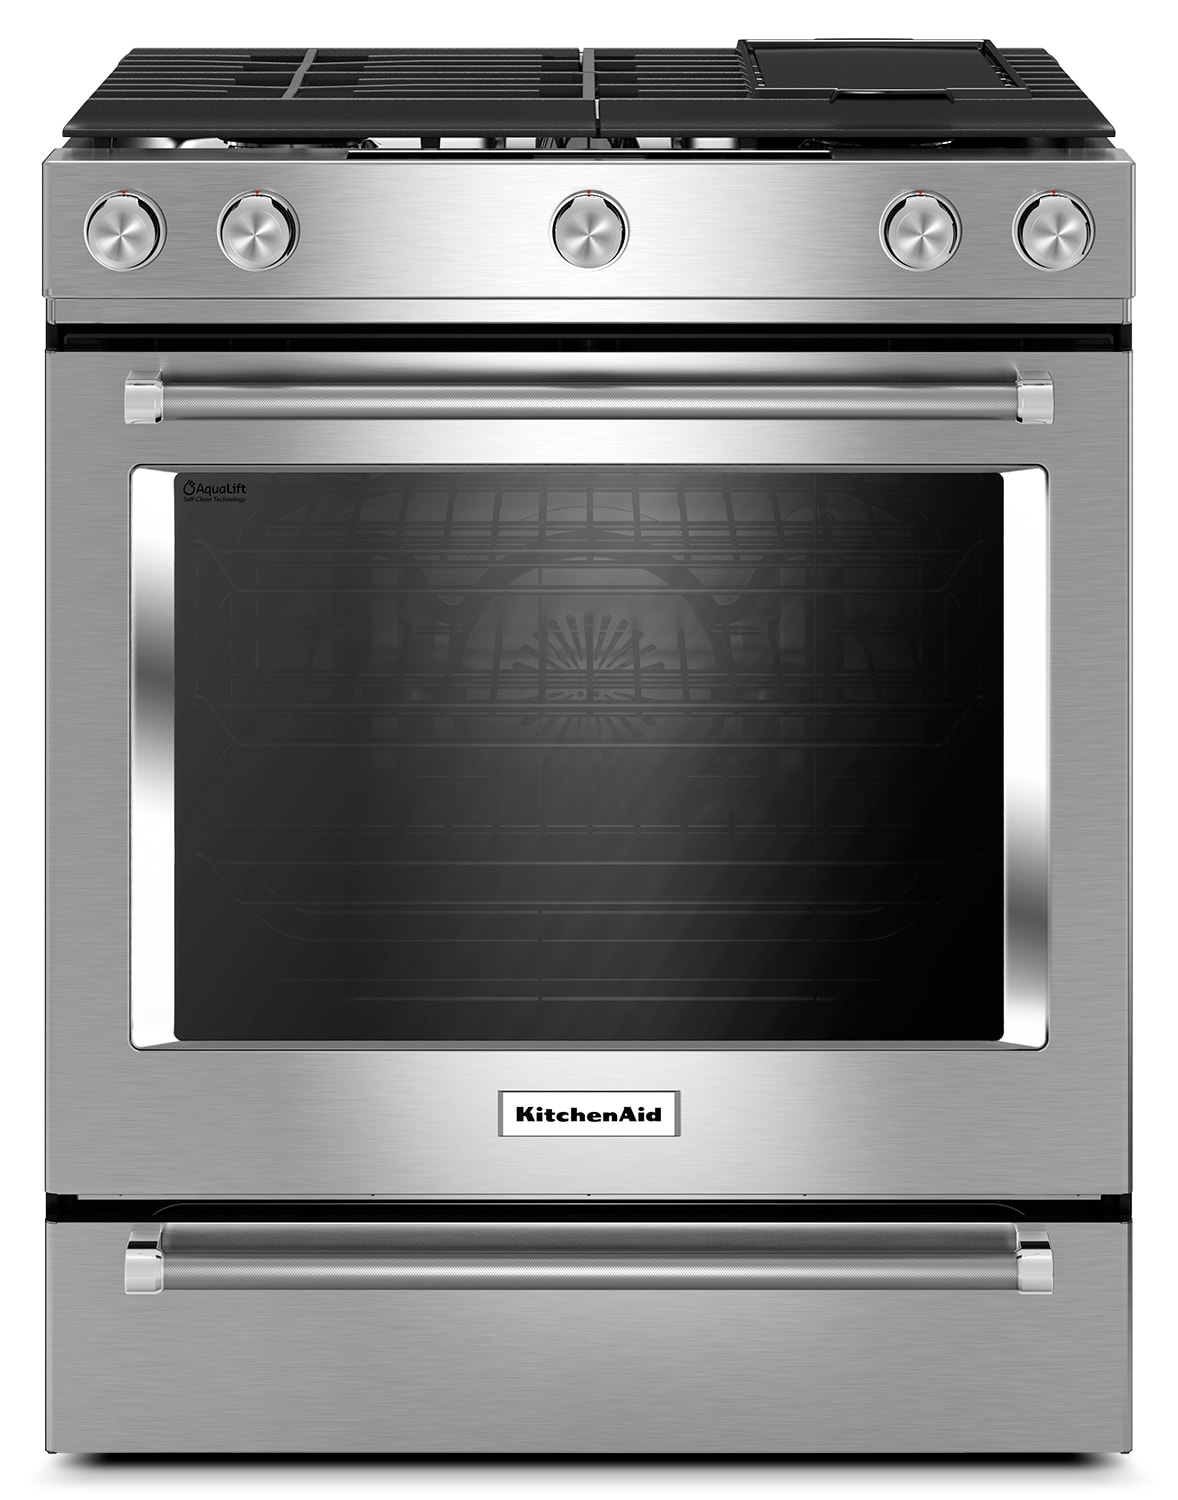 Cooking Products - KitchenAid Stainless Steel Slide-In Dual Fuel Convection Range (7.1 Cu. Ft.) - YKSDB900ESS